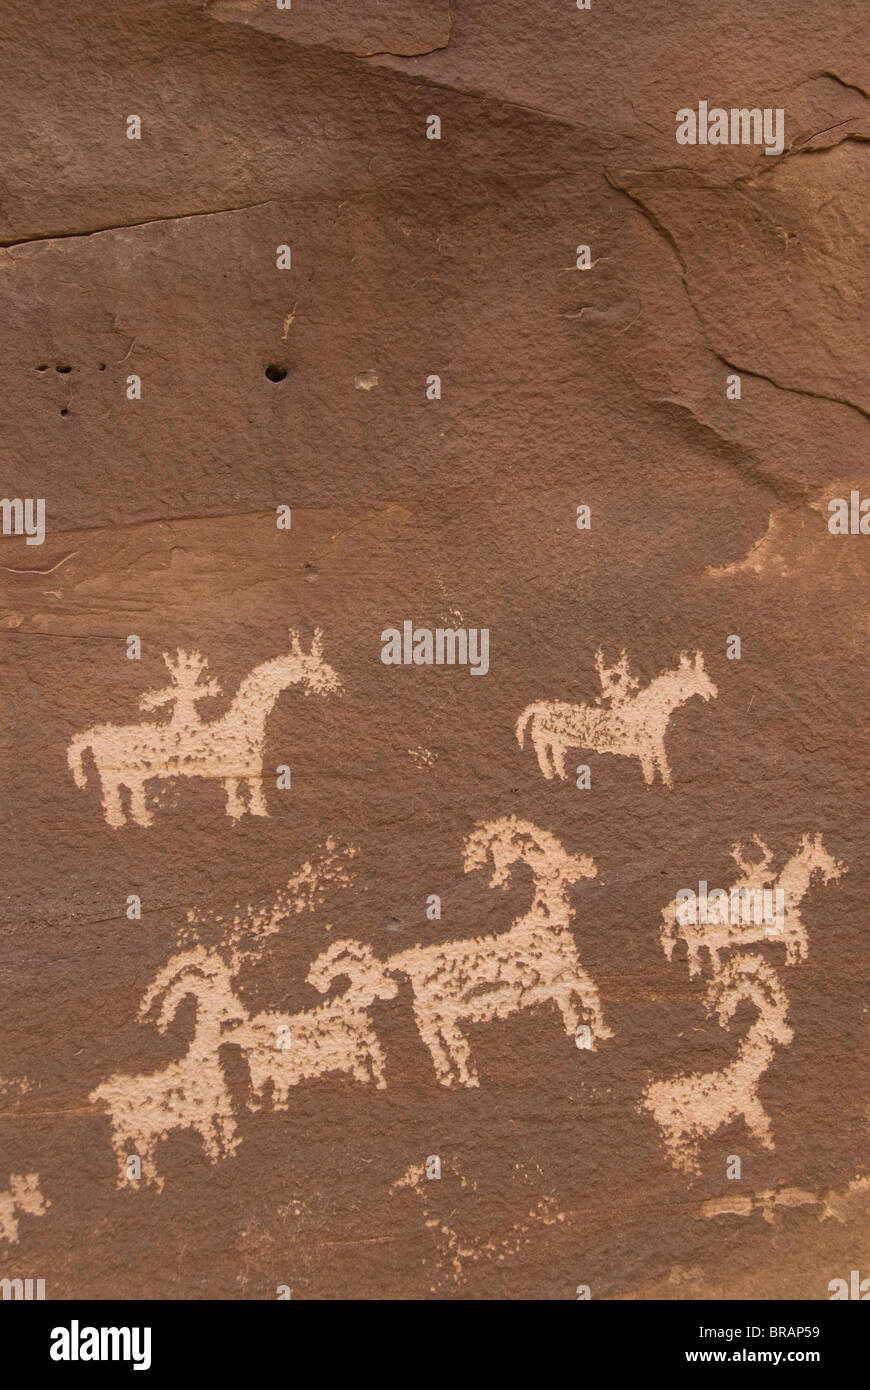 Ute Rock Art (petroglyphs), near Wolfe Ranch, Arches National Park, Utah, United States of America, North America - Stock Image